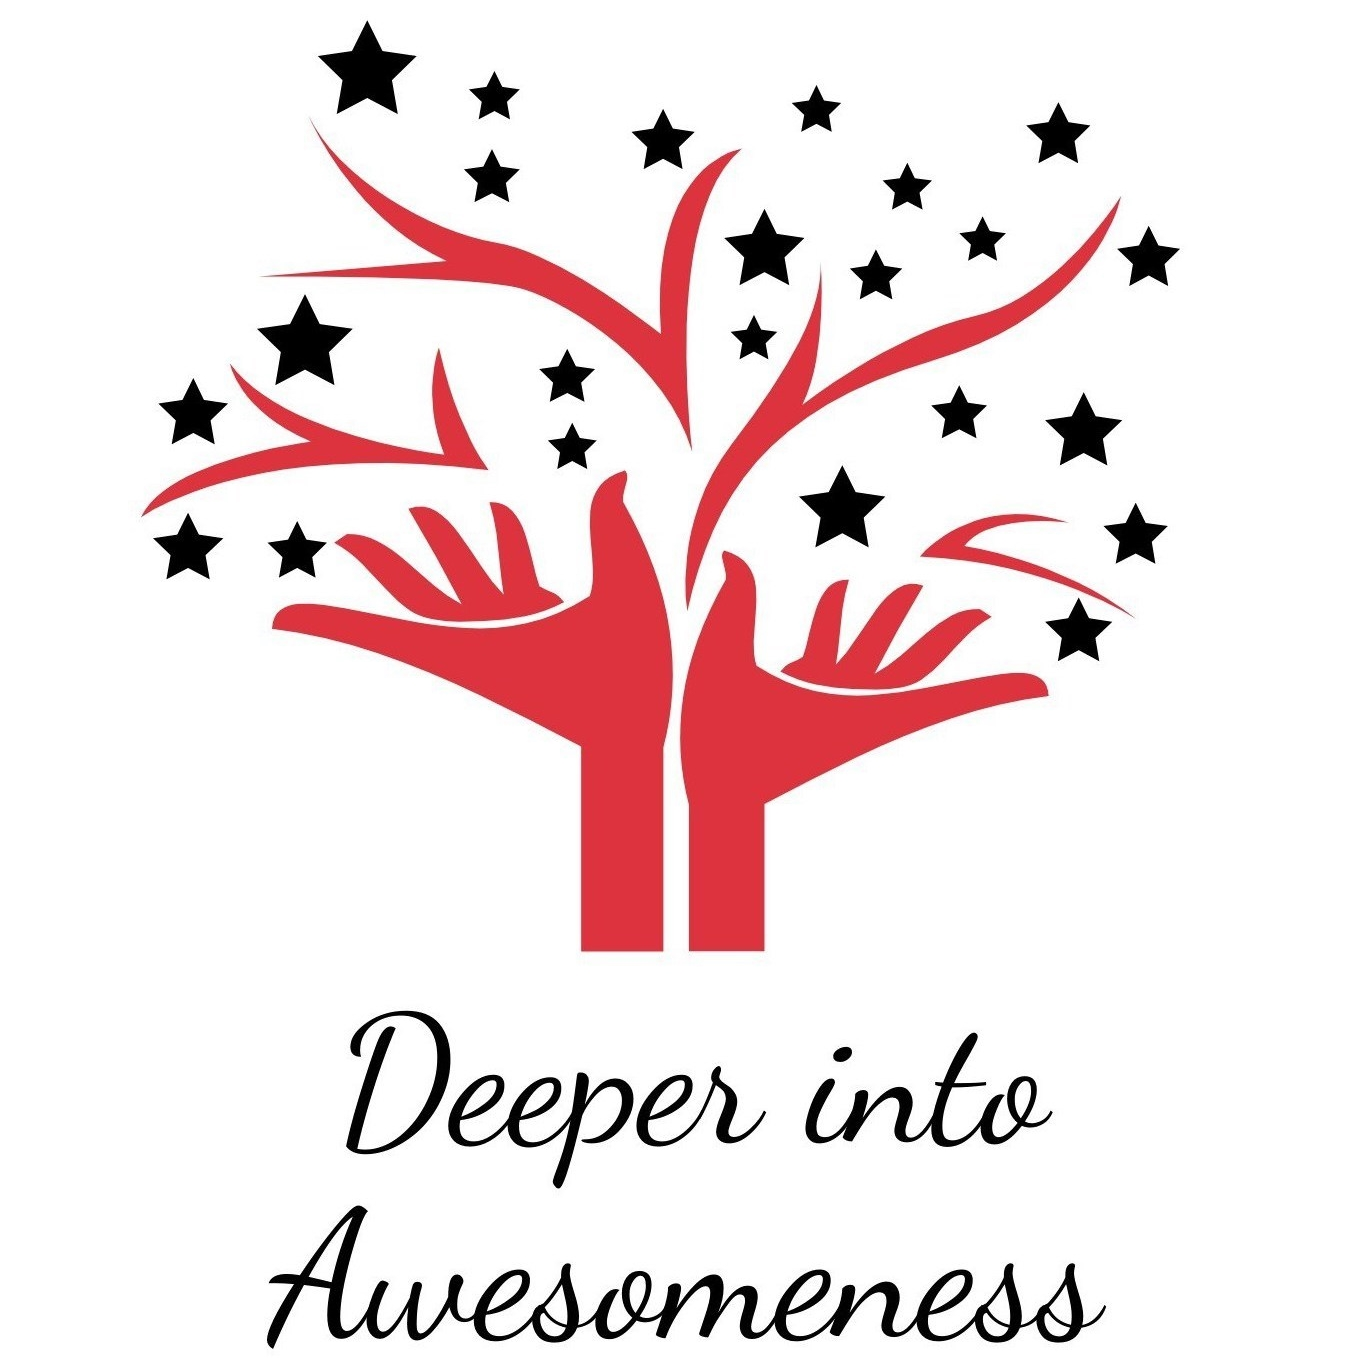 hight resolution of dig deeper into your awesomeness by discovering new ways to view yourself and uncover your gifts you re awesome i m awesome